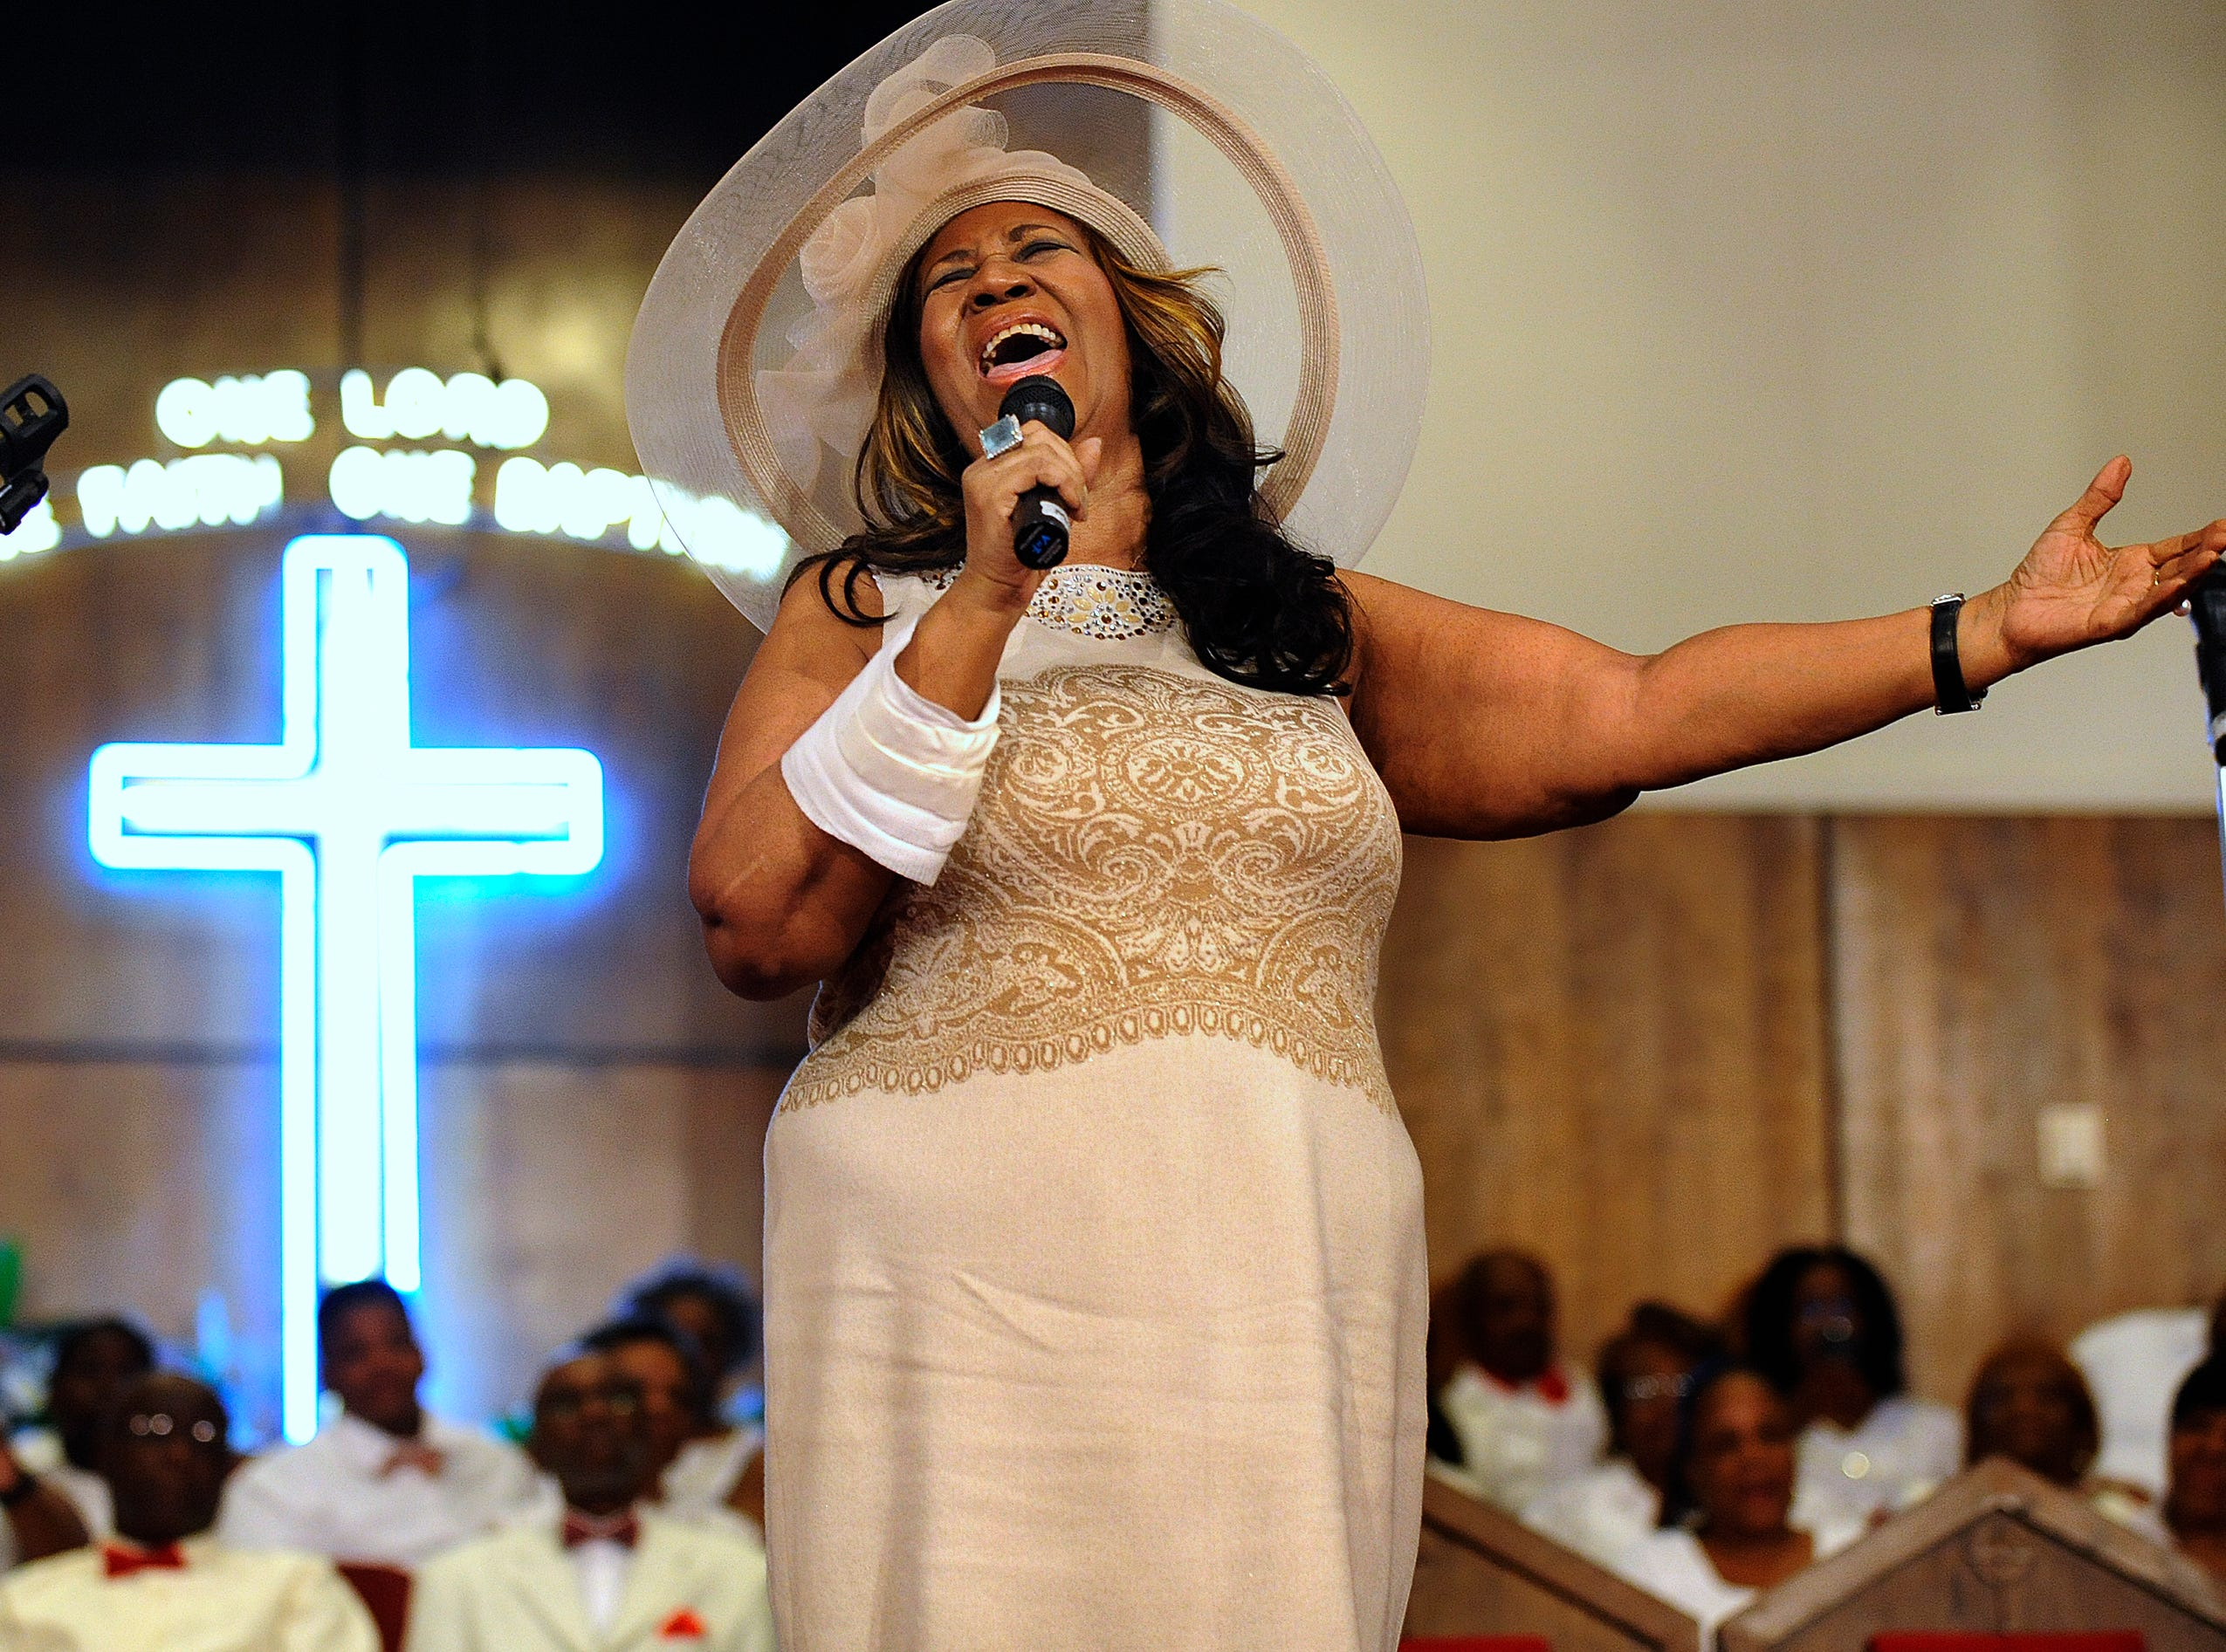 FILE - In this June 7, 2015 file photo, Aretha Franklin sings during a memorial service for her father and brother, Rev. C.L. and Rev. Cecil Franklin, at New Bethel Baptist Church where they were ministers, in Detroit, Mich. A person close to Franklin said on Monday that the 76-year-old singer is ill. Franklin canceled planned concerts earlier this year after she was ordered by her doctor to stay off the road and rest up.  (Elizabeth Conley/The Detroit News via AP, File) ORG XMIT: MIDTN901